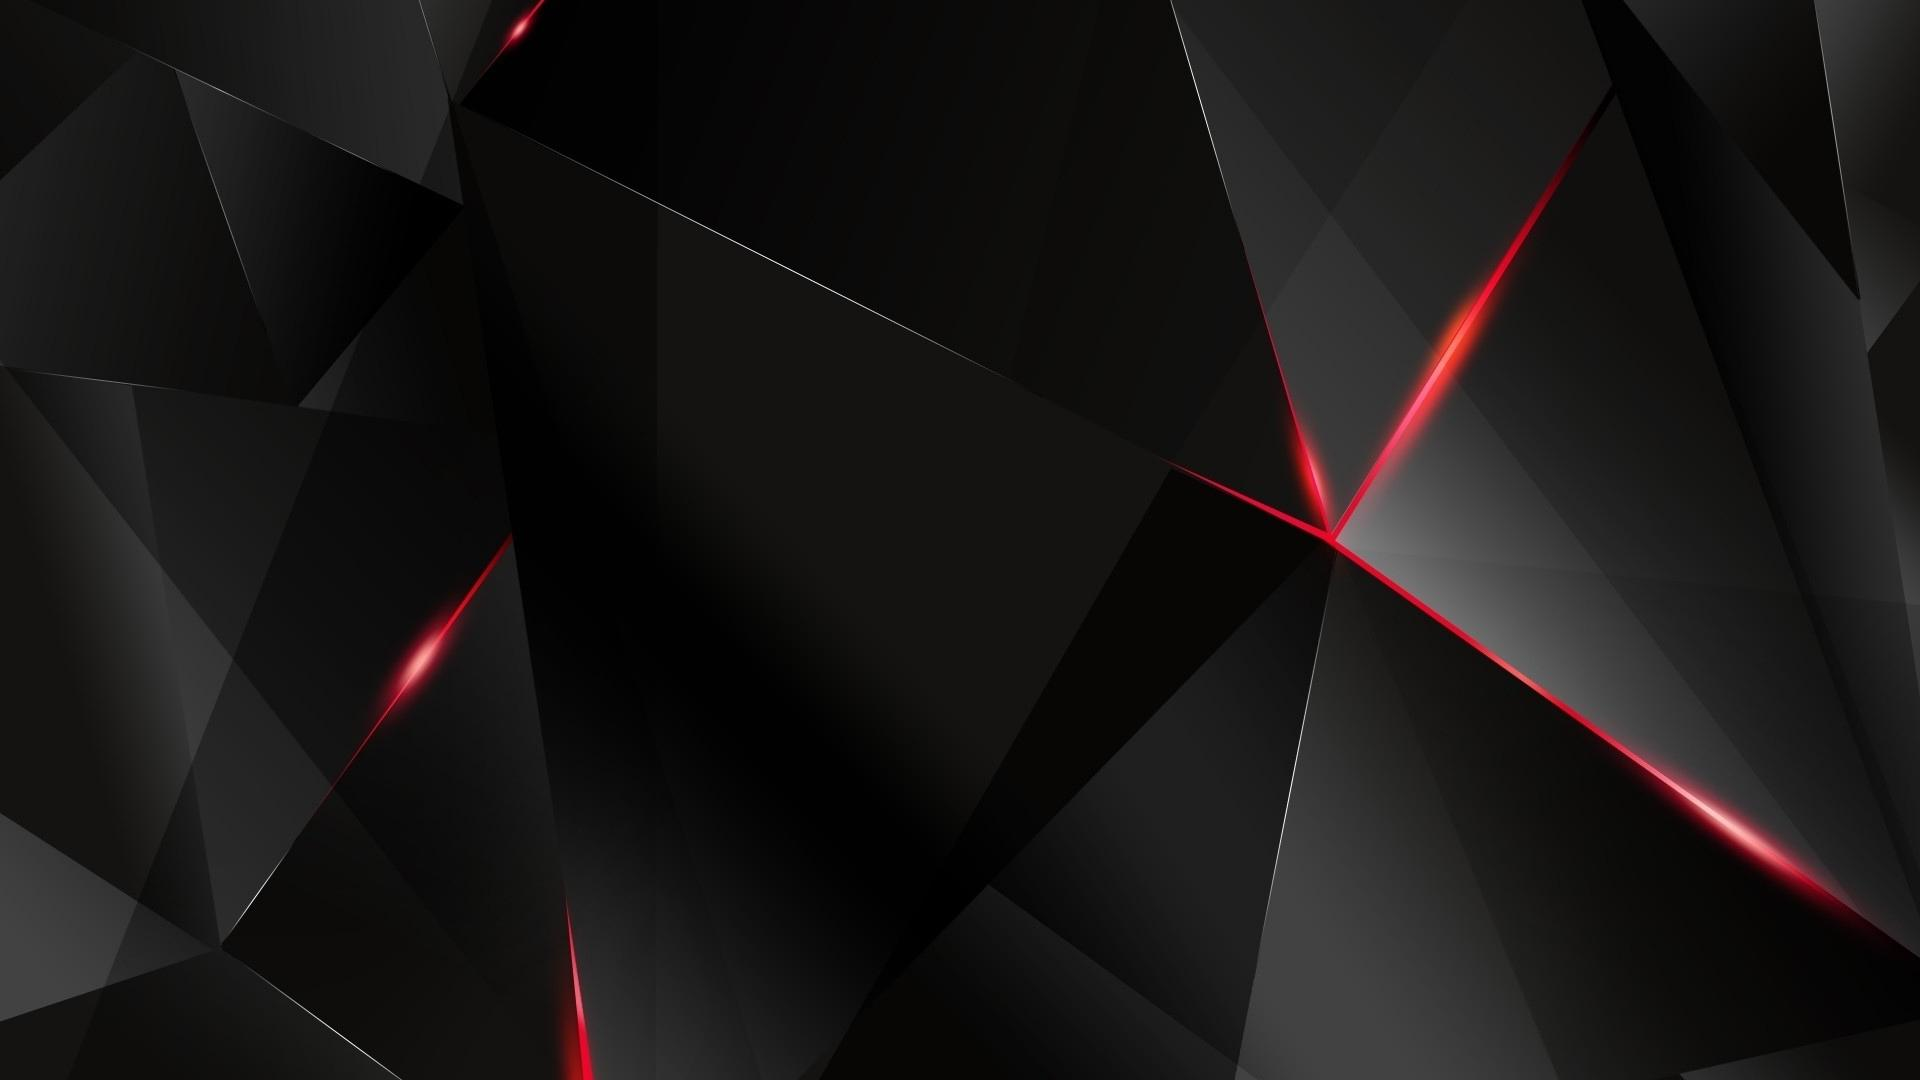 4k Black Wallpapers For Windows 10 02 Of 10 Black And Red 3d